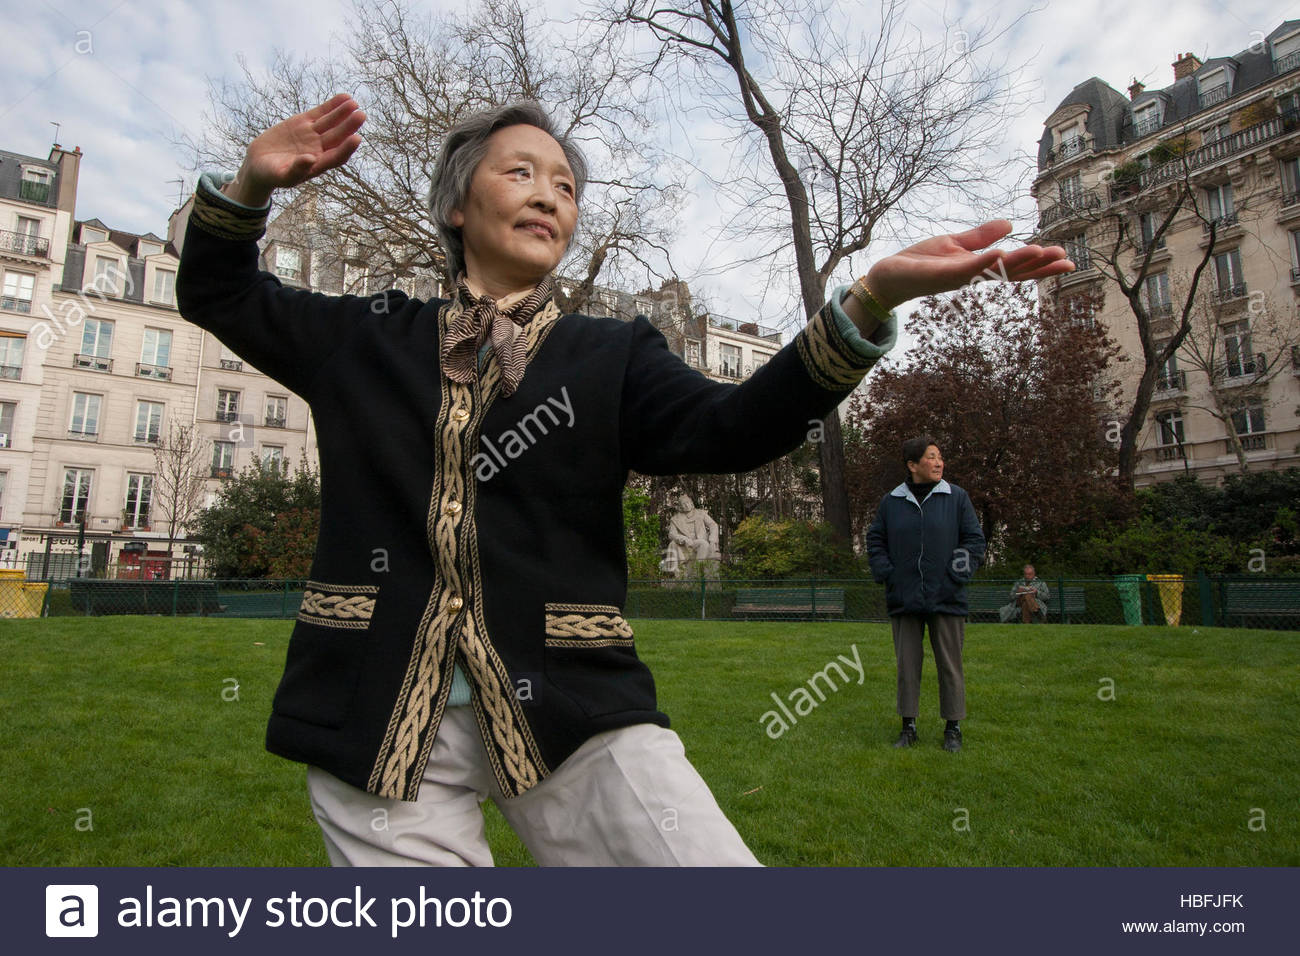 Members of the Asian community practice Tai Chi in Square du Temple. - Stock Image